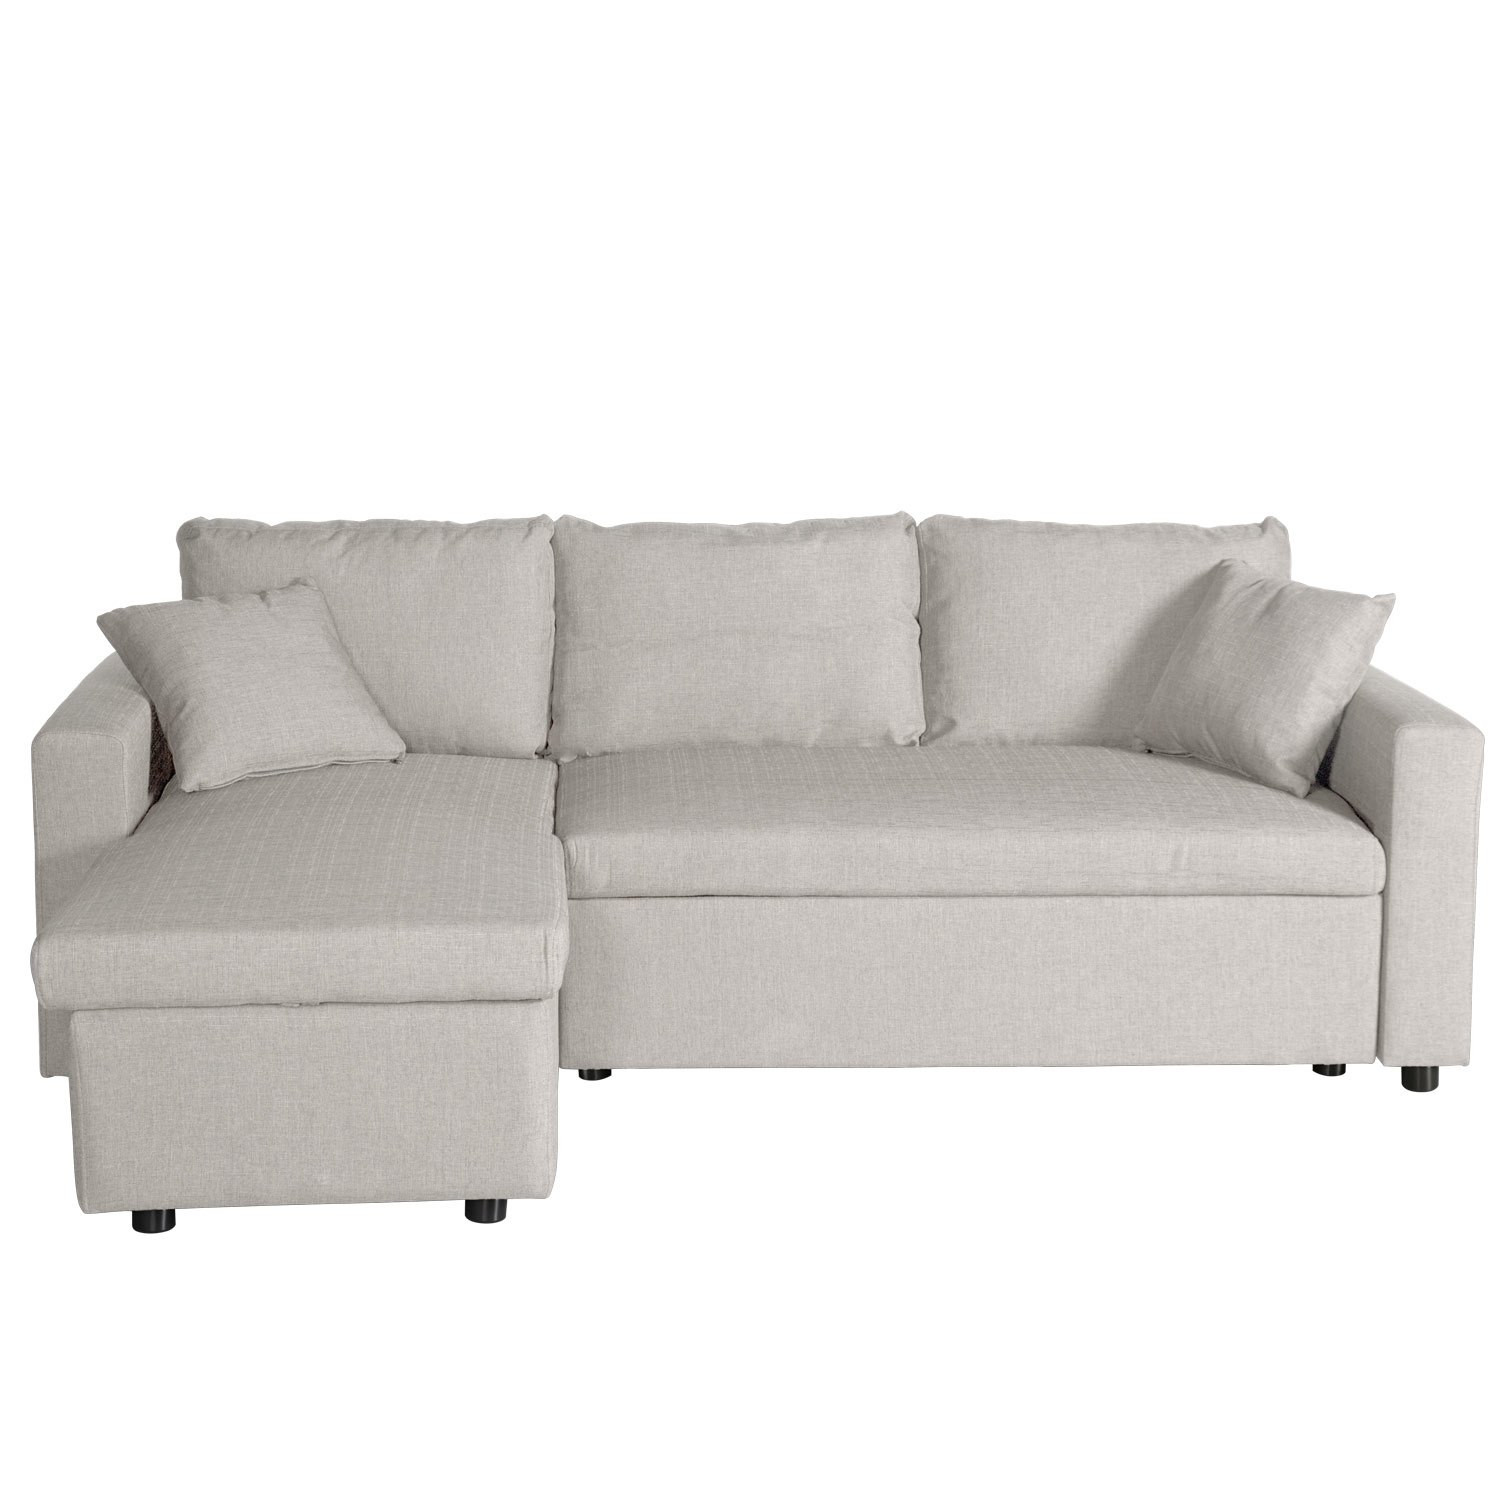 Chaise Longue Cama Baratos Contemporáneo Pra Online sofá Cama Chaise Longue Adara Barato Of Chaise Longue Cama Baratos Único sofá Cama Popular sofa Cheslong Sencillo sofa Chaise